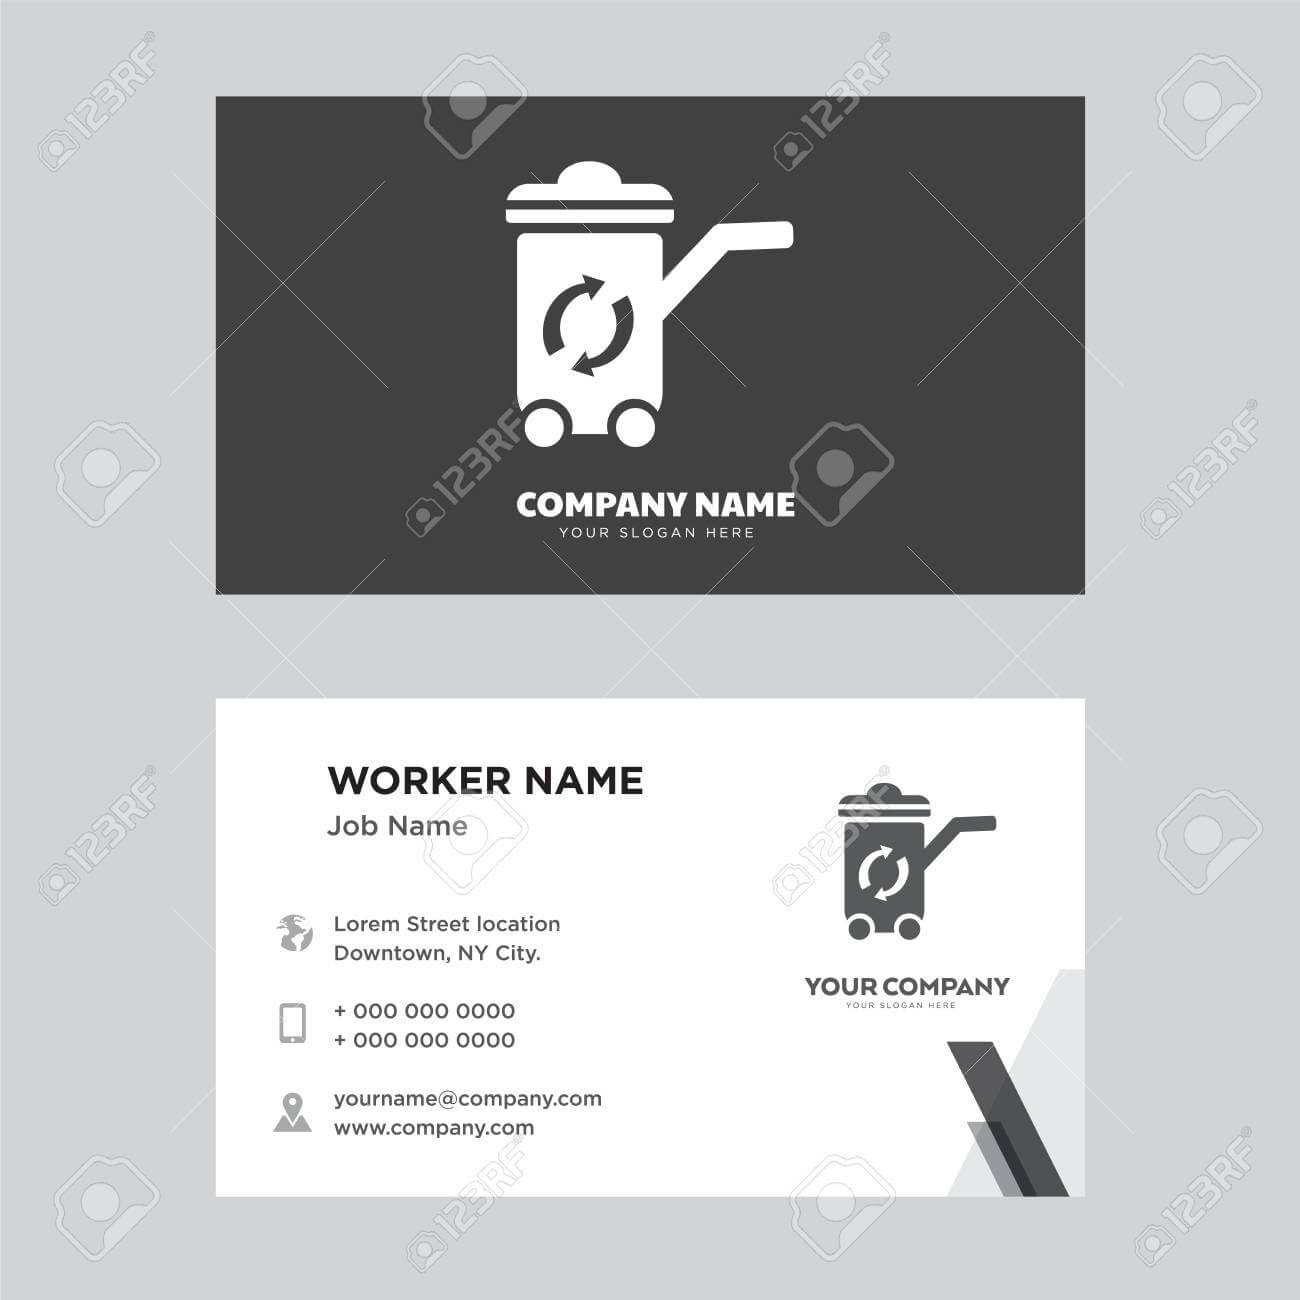 Recycle Bin Business Card Design Template, Visiting For Your.. With Bin Card Template